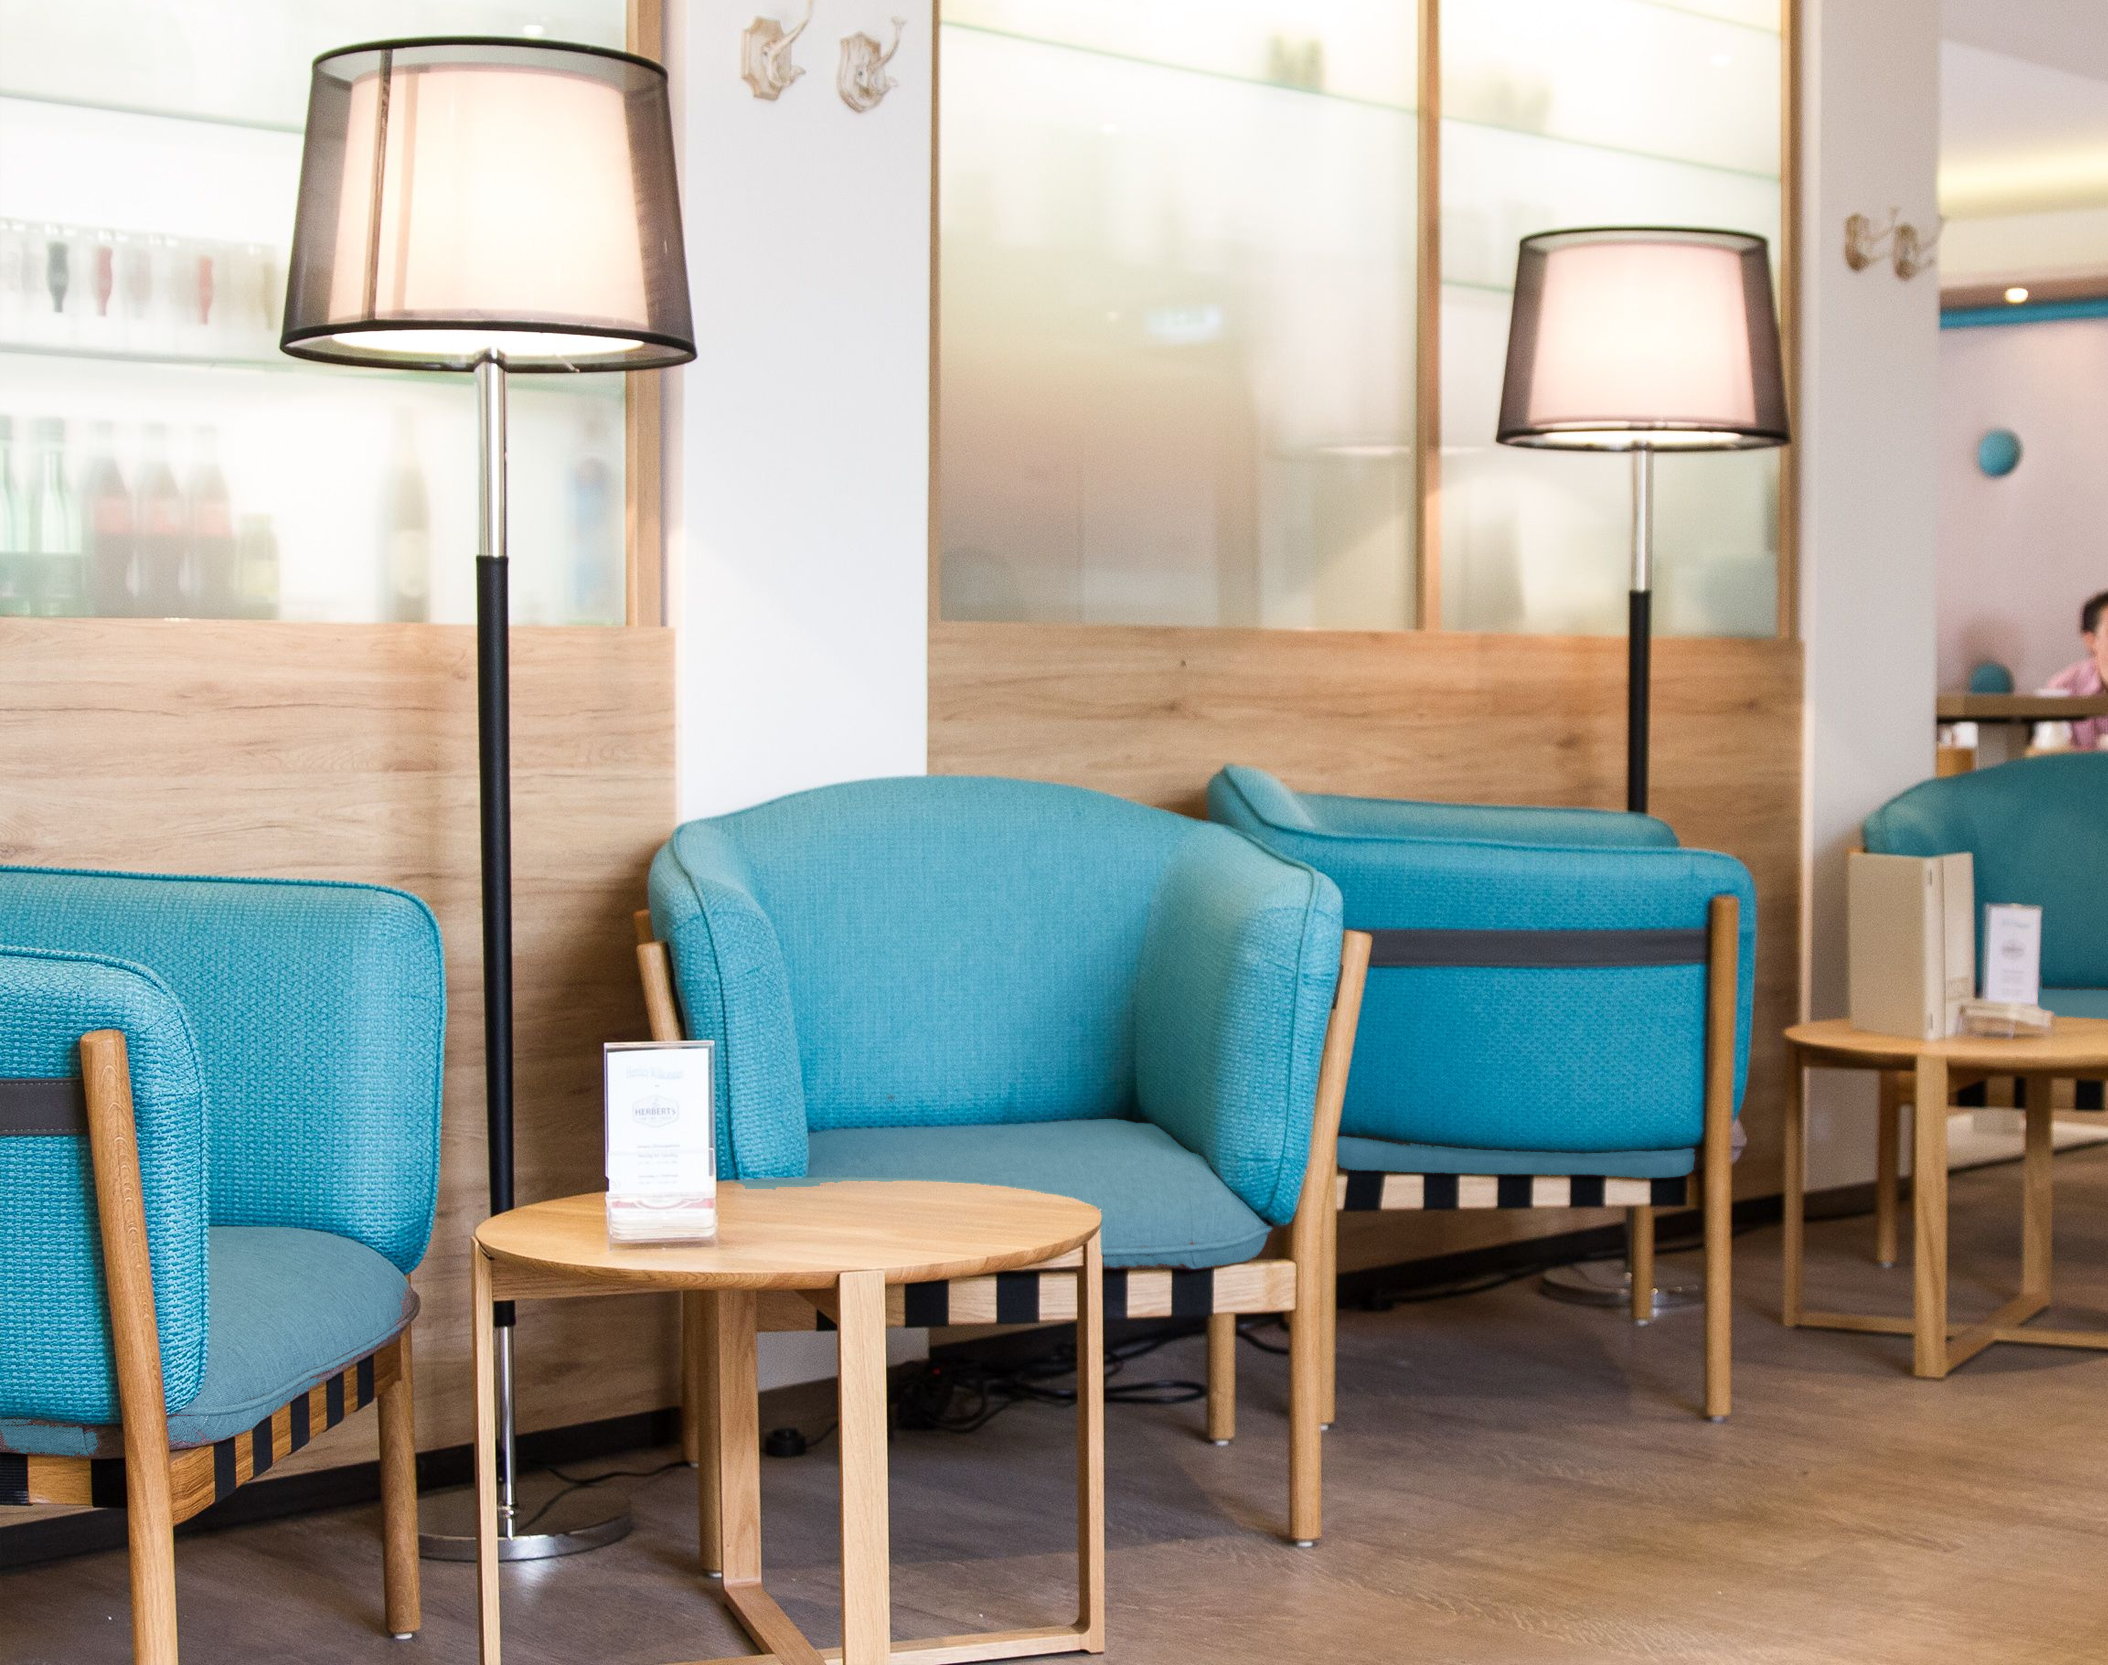 Dowel Lounges installed at Herbert's Cafe in Vienna.